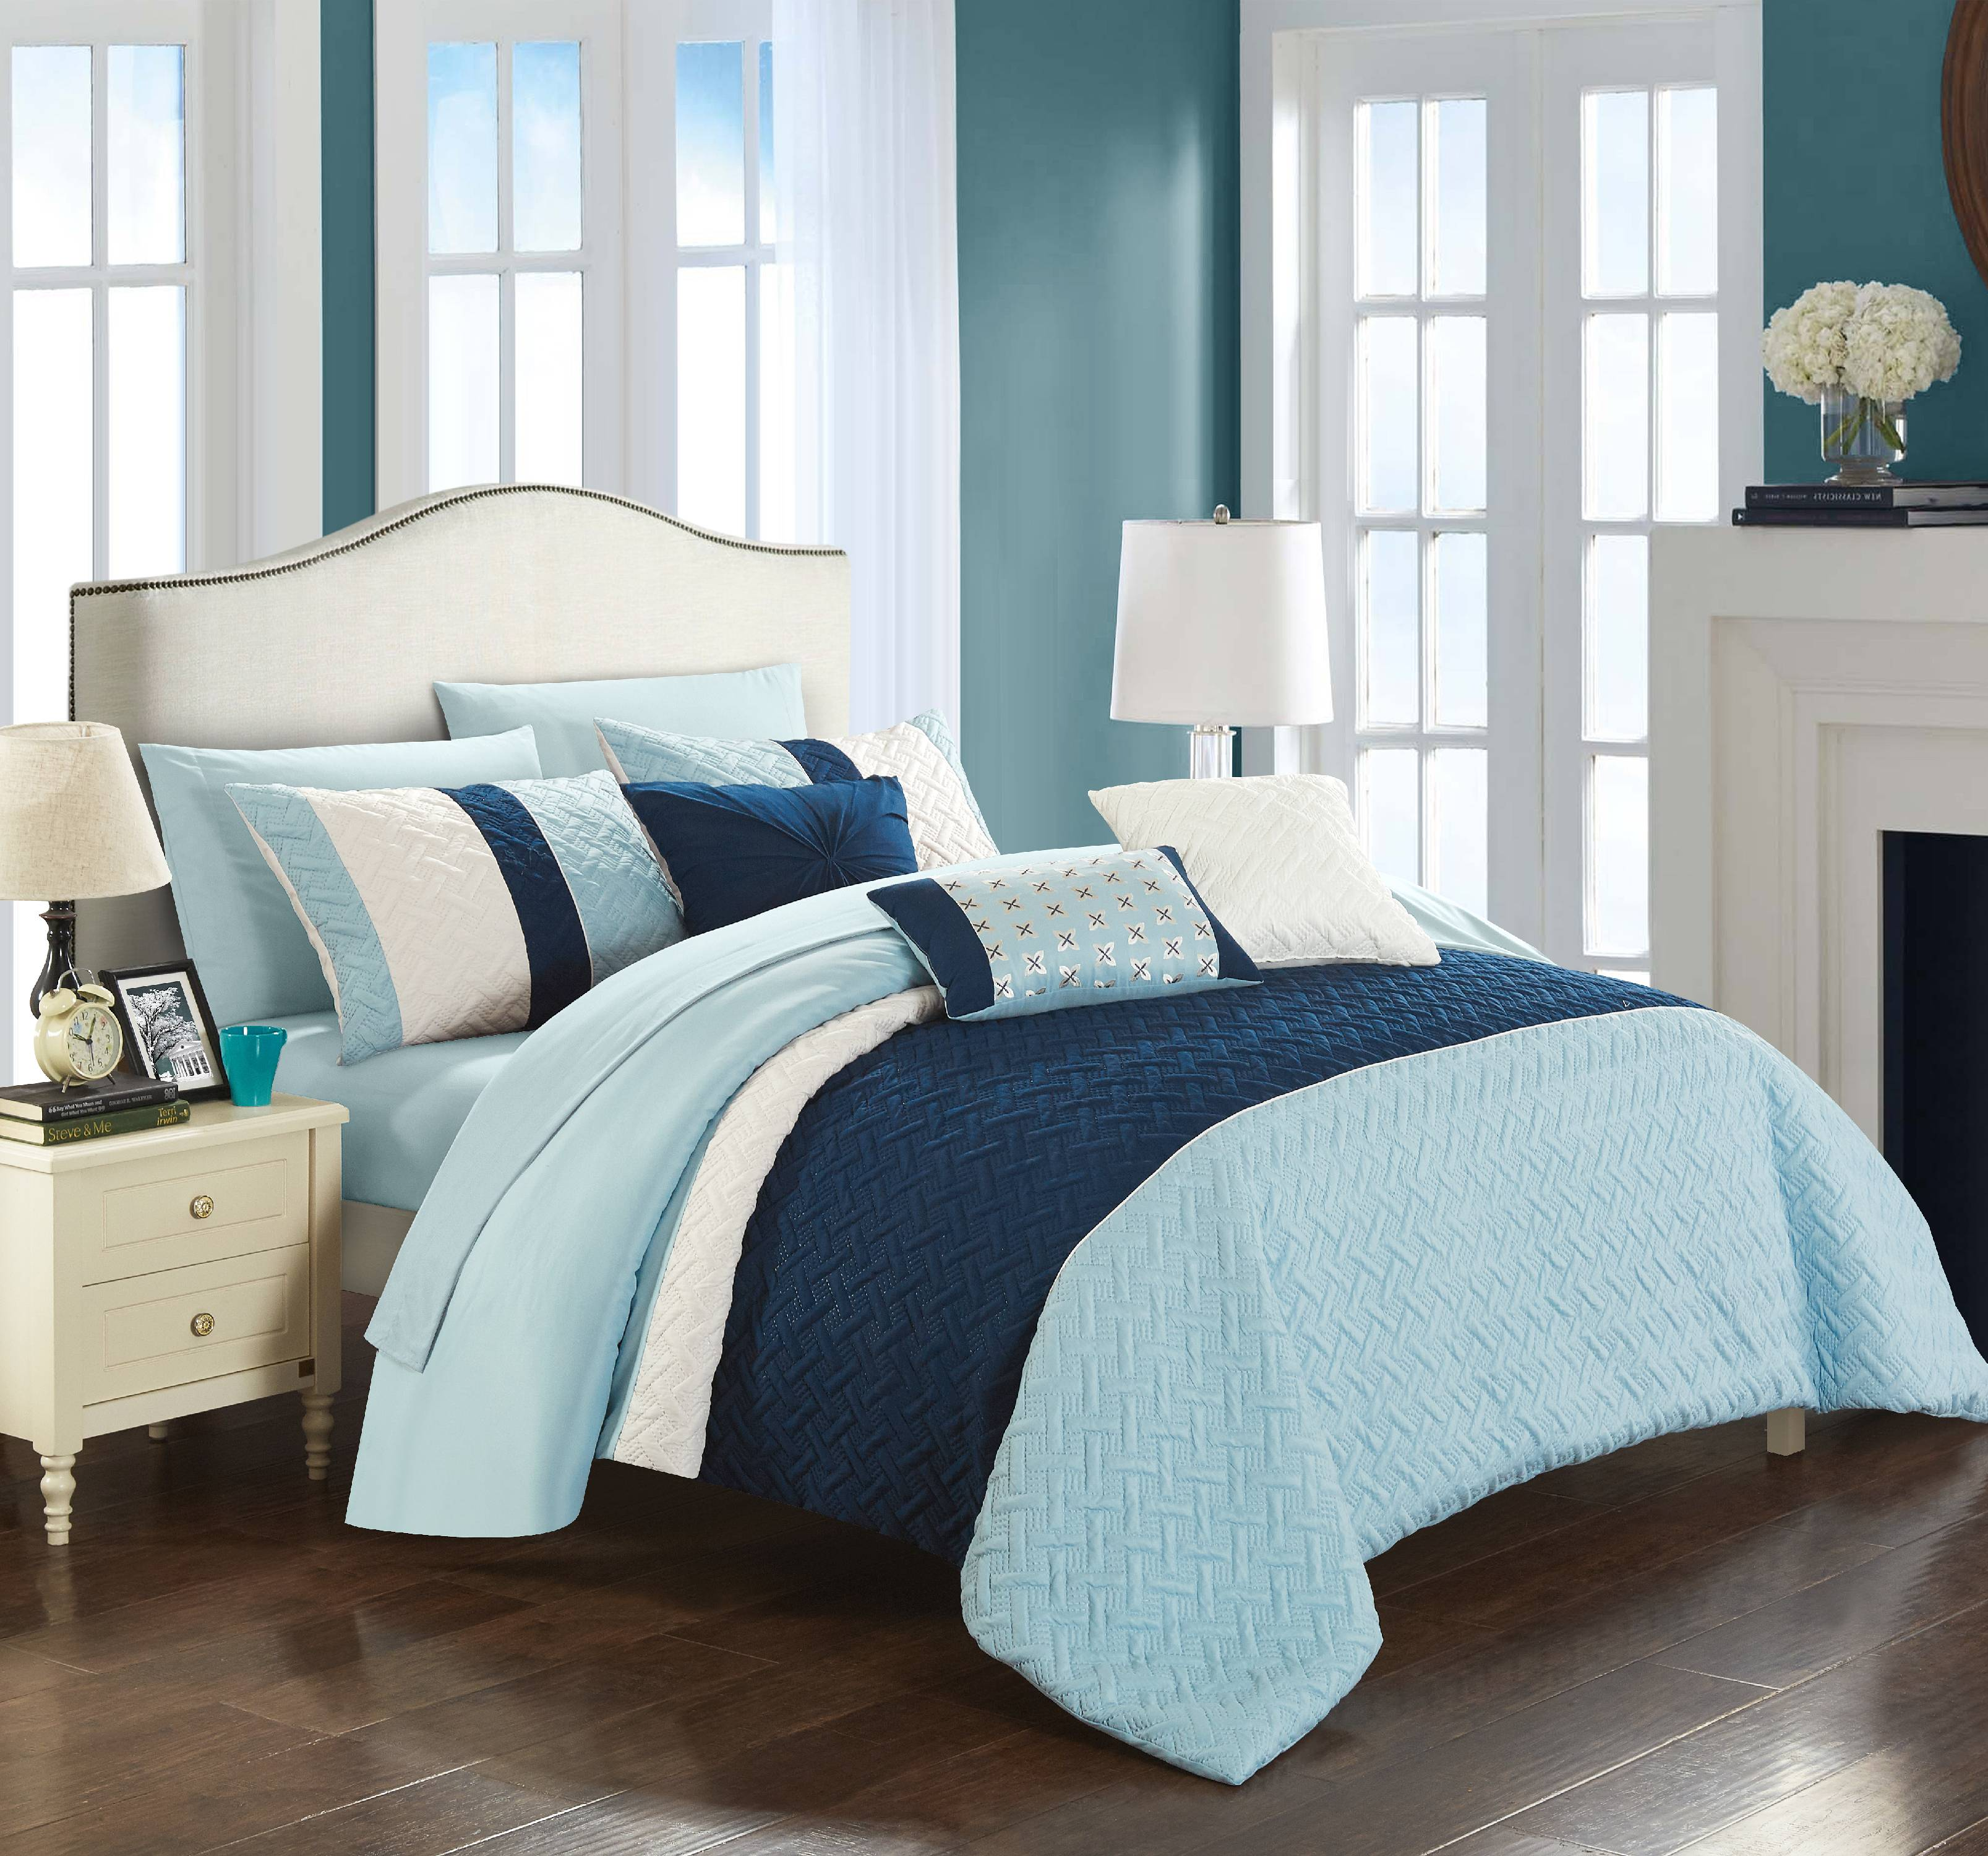 Chic Home Arza 10 Piece Comforter Set, Bed in a Bag Bedding